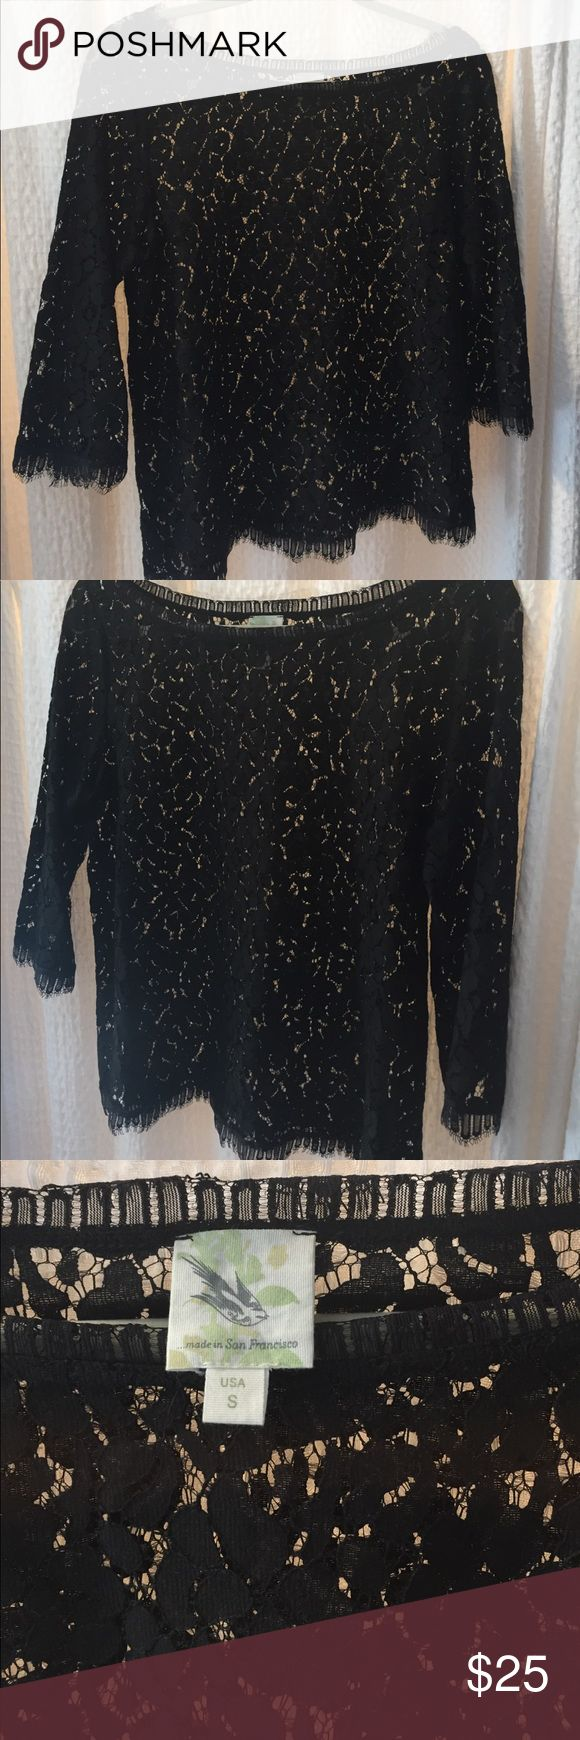 Made in Sam Francisco (Anthropologie) lace top Black lace boatneck top in soft fabric.  Sheer, elegant top with elbow sleeves.  Care label removed (it was visible through the top!). Excellent used condition. Anthropologie Tops Blouses